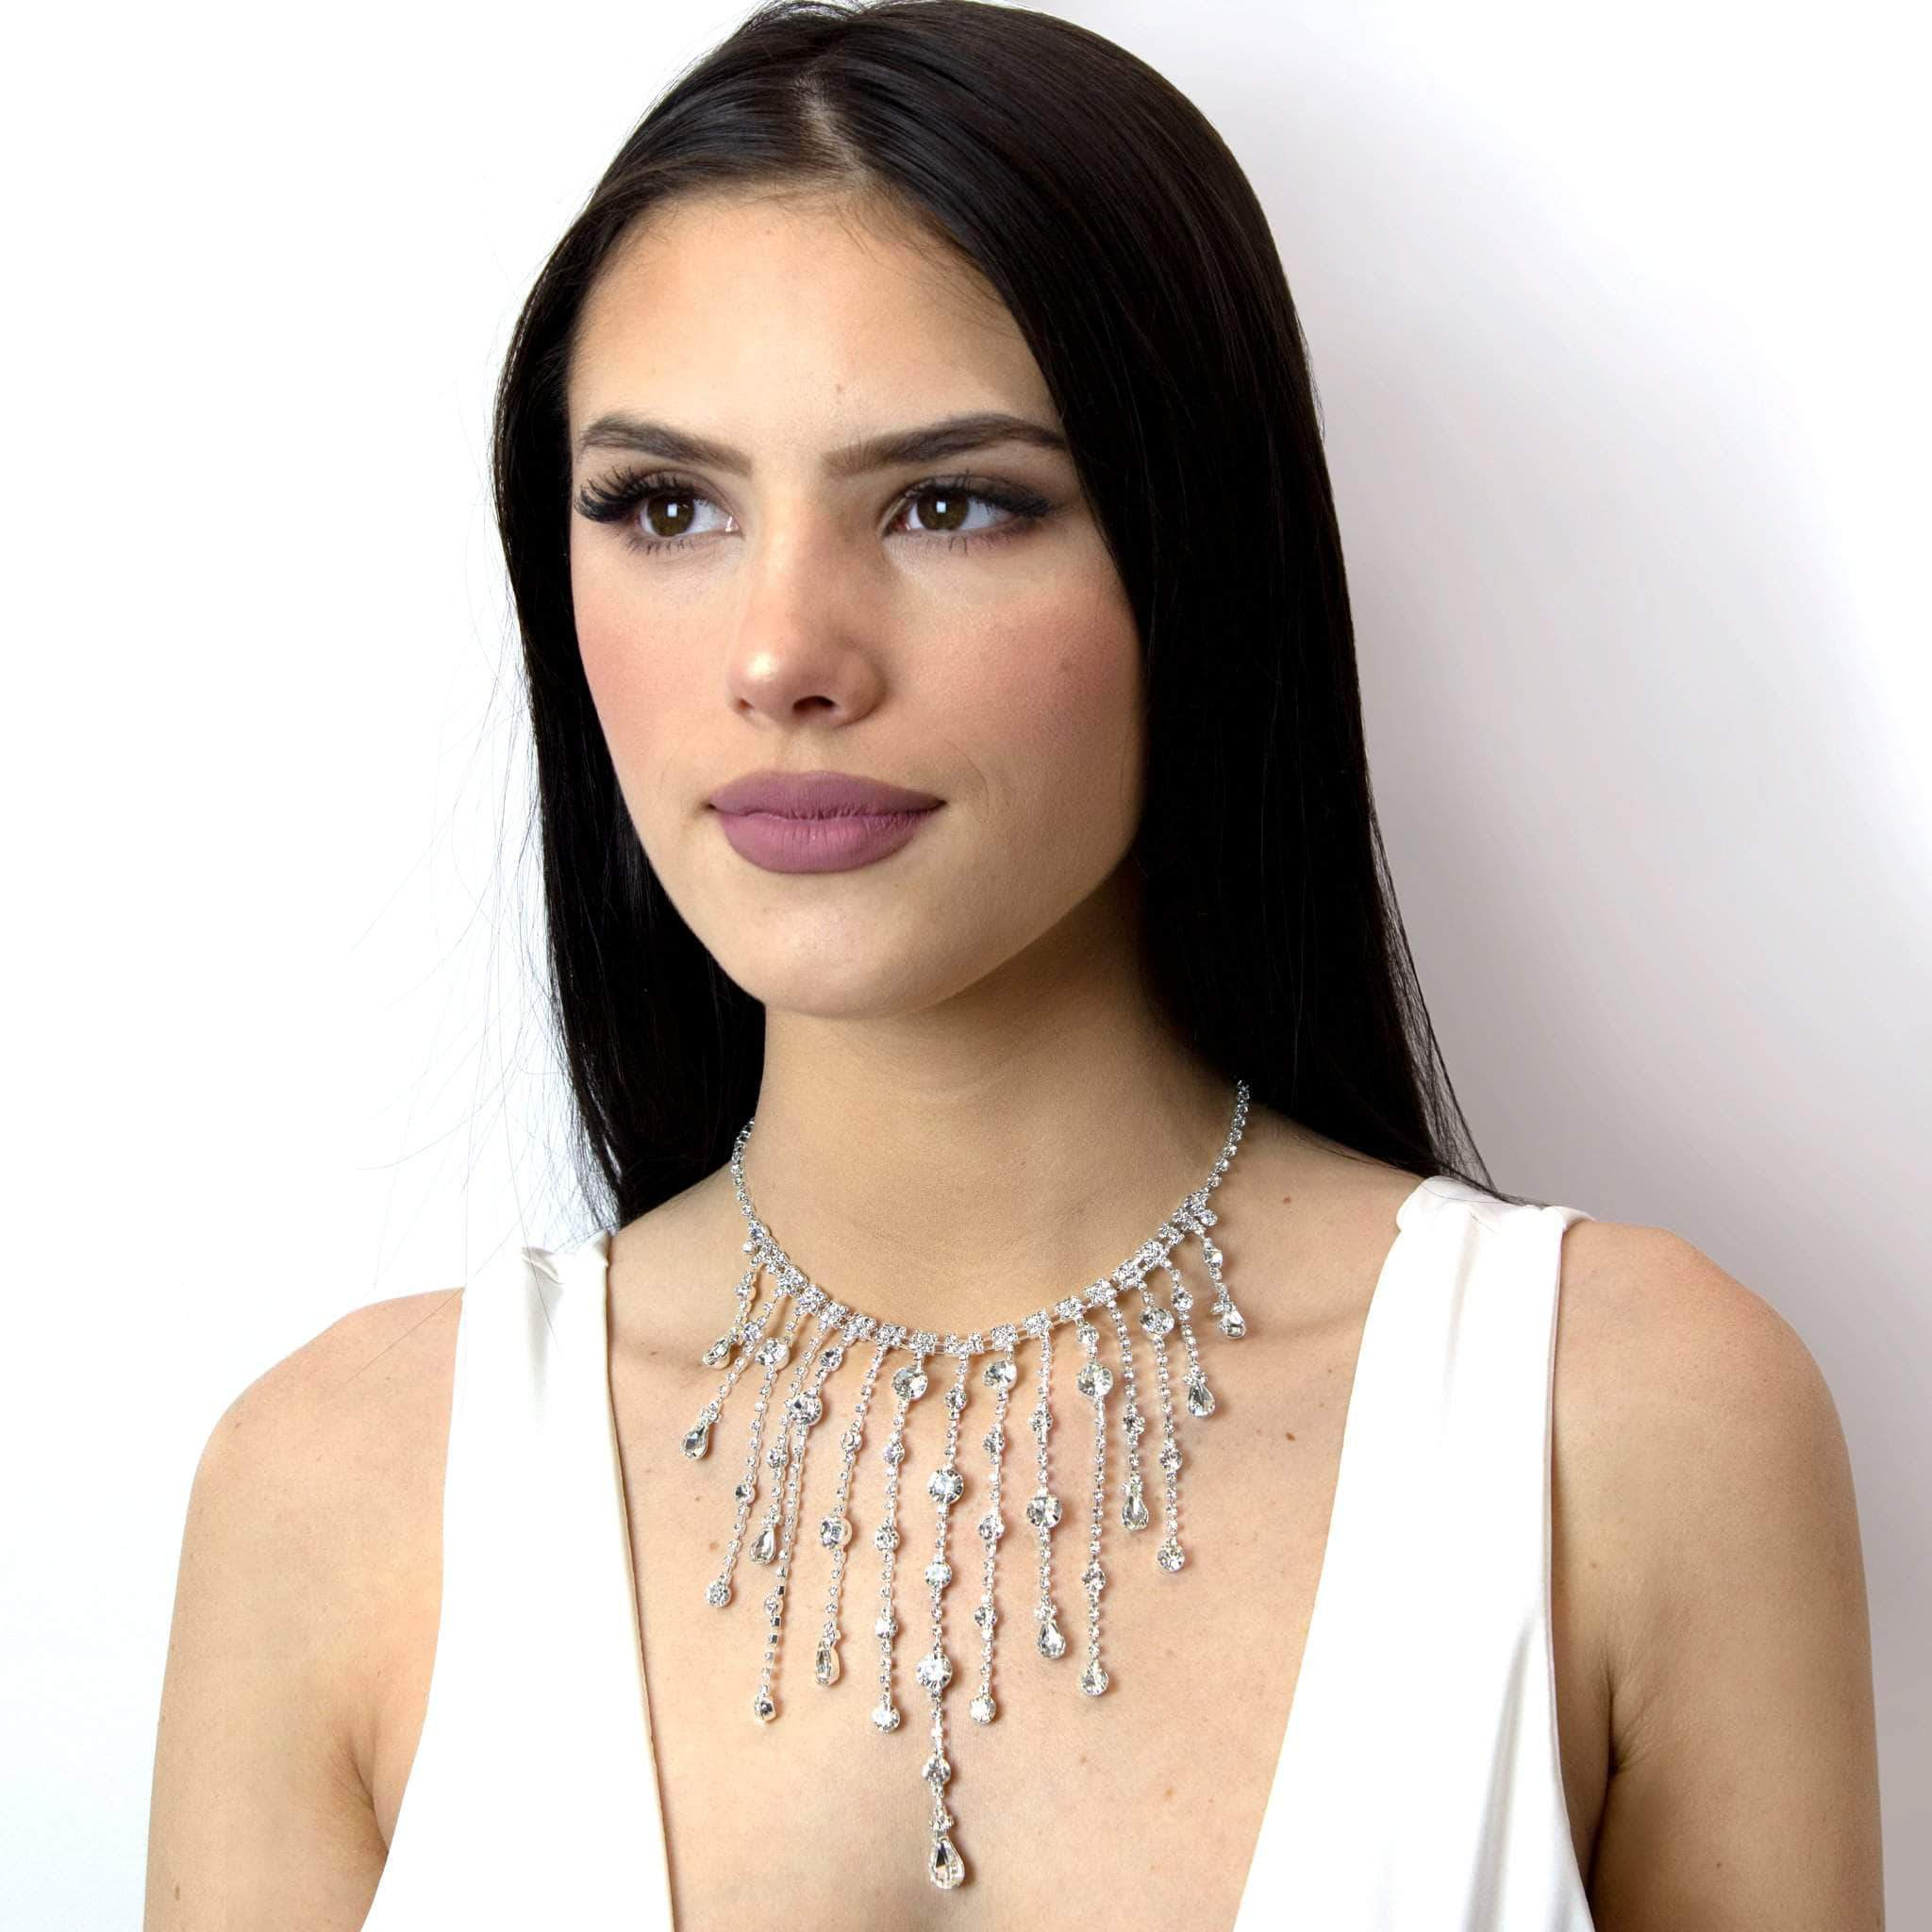 Necklaces - Bibs #16980 - Raindrop Choker Necklace